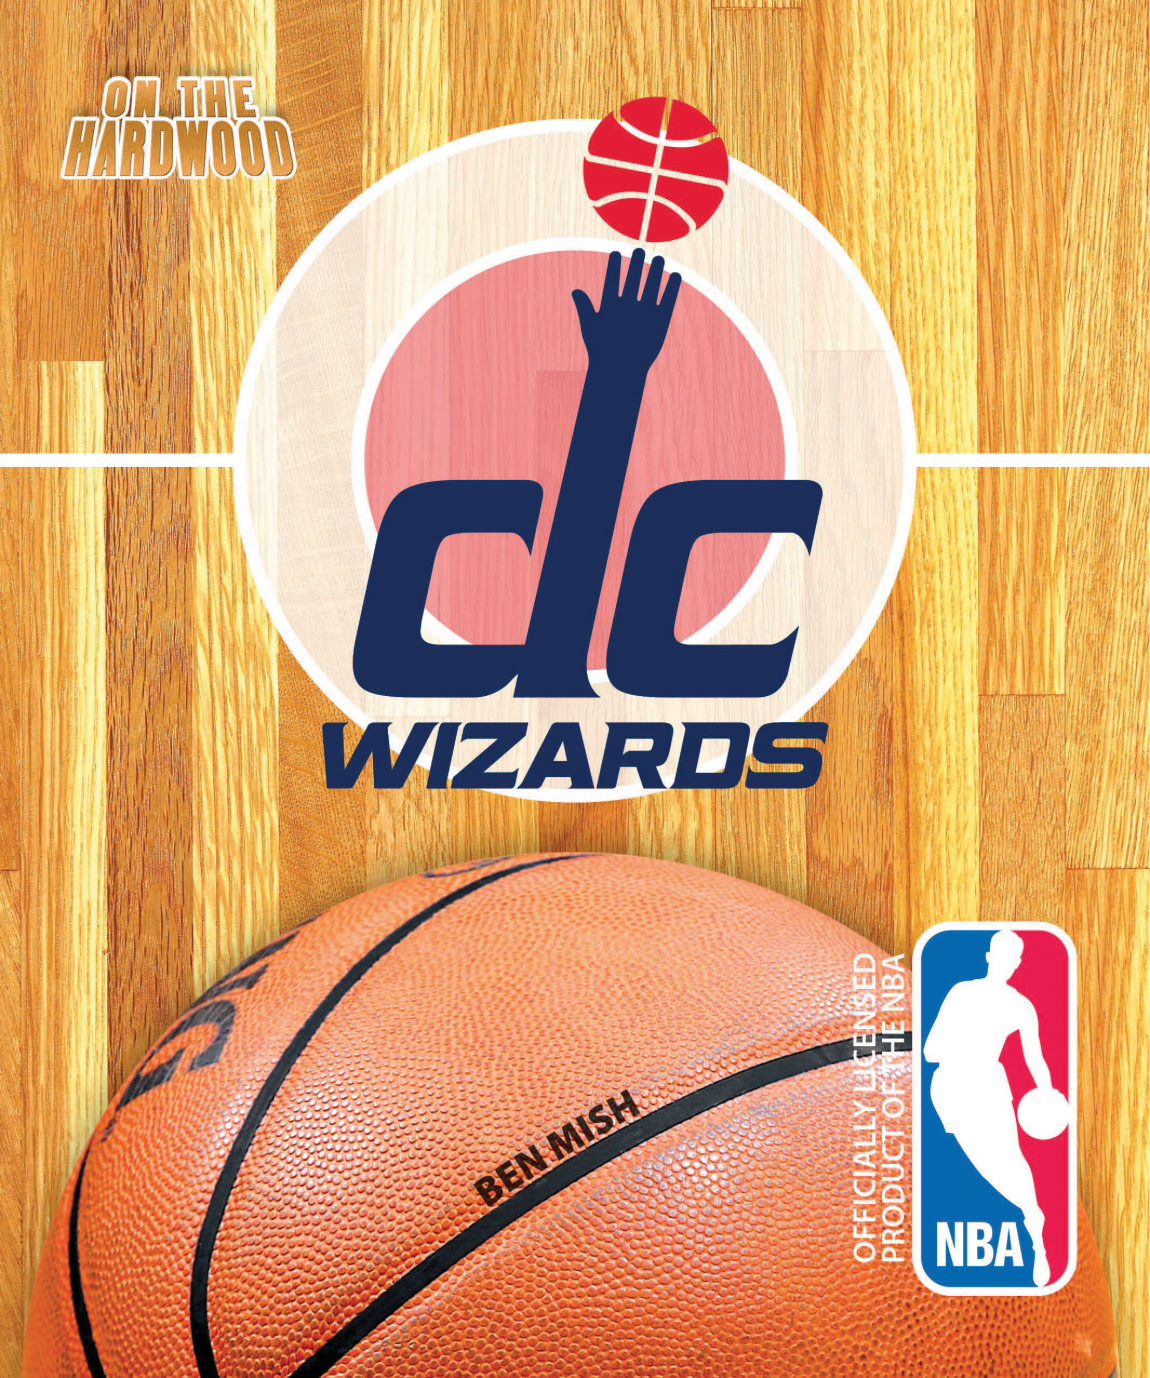 Wizards-1.png